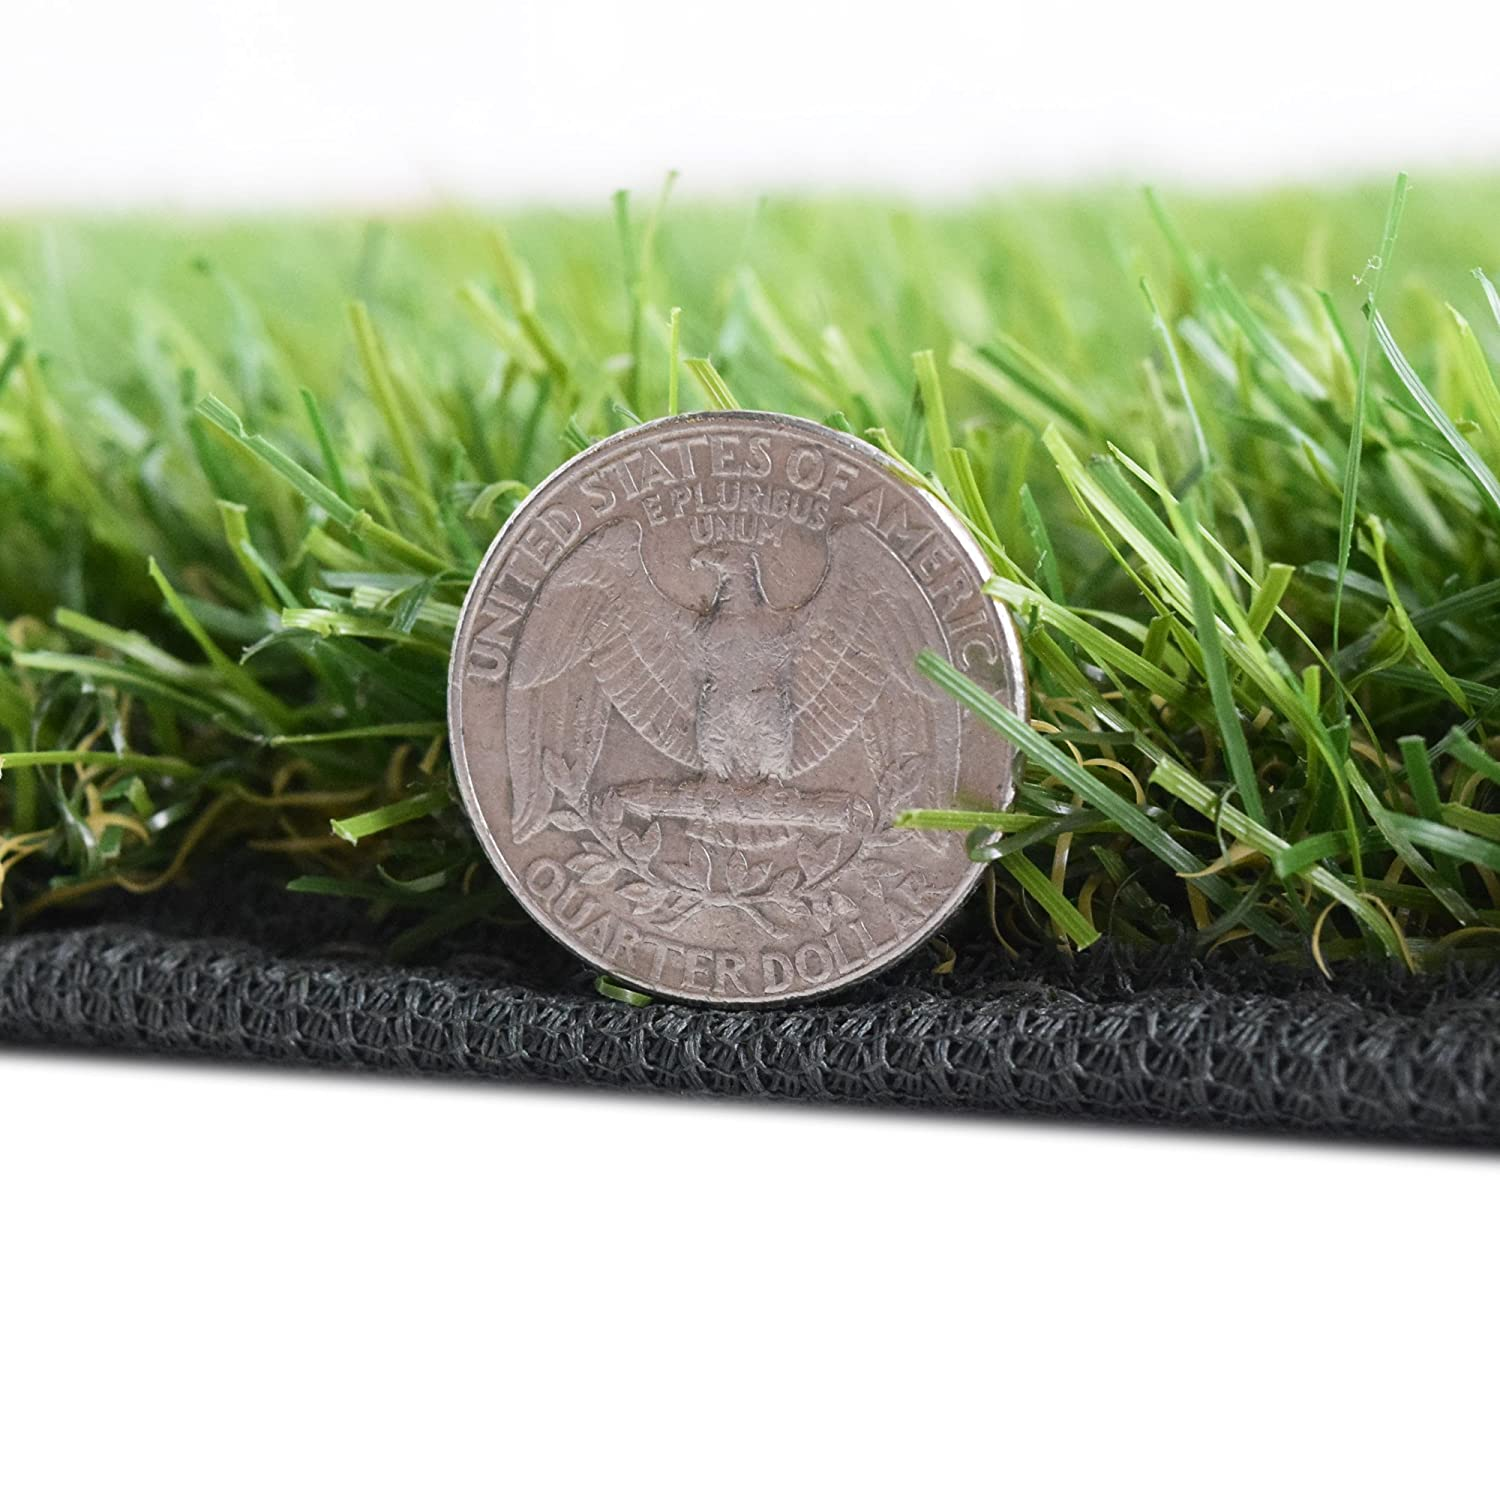 iCustomRug Thick Synthetic Artificial Grass Available In Many Sizes With Finished Edges All Around And Drainage Holes